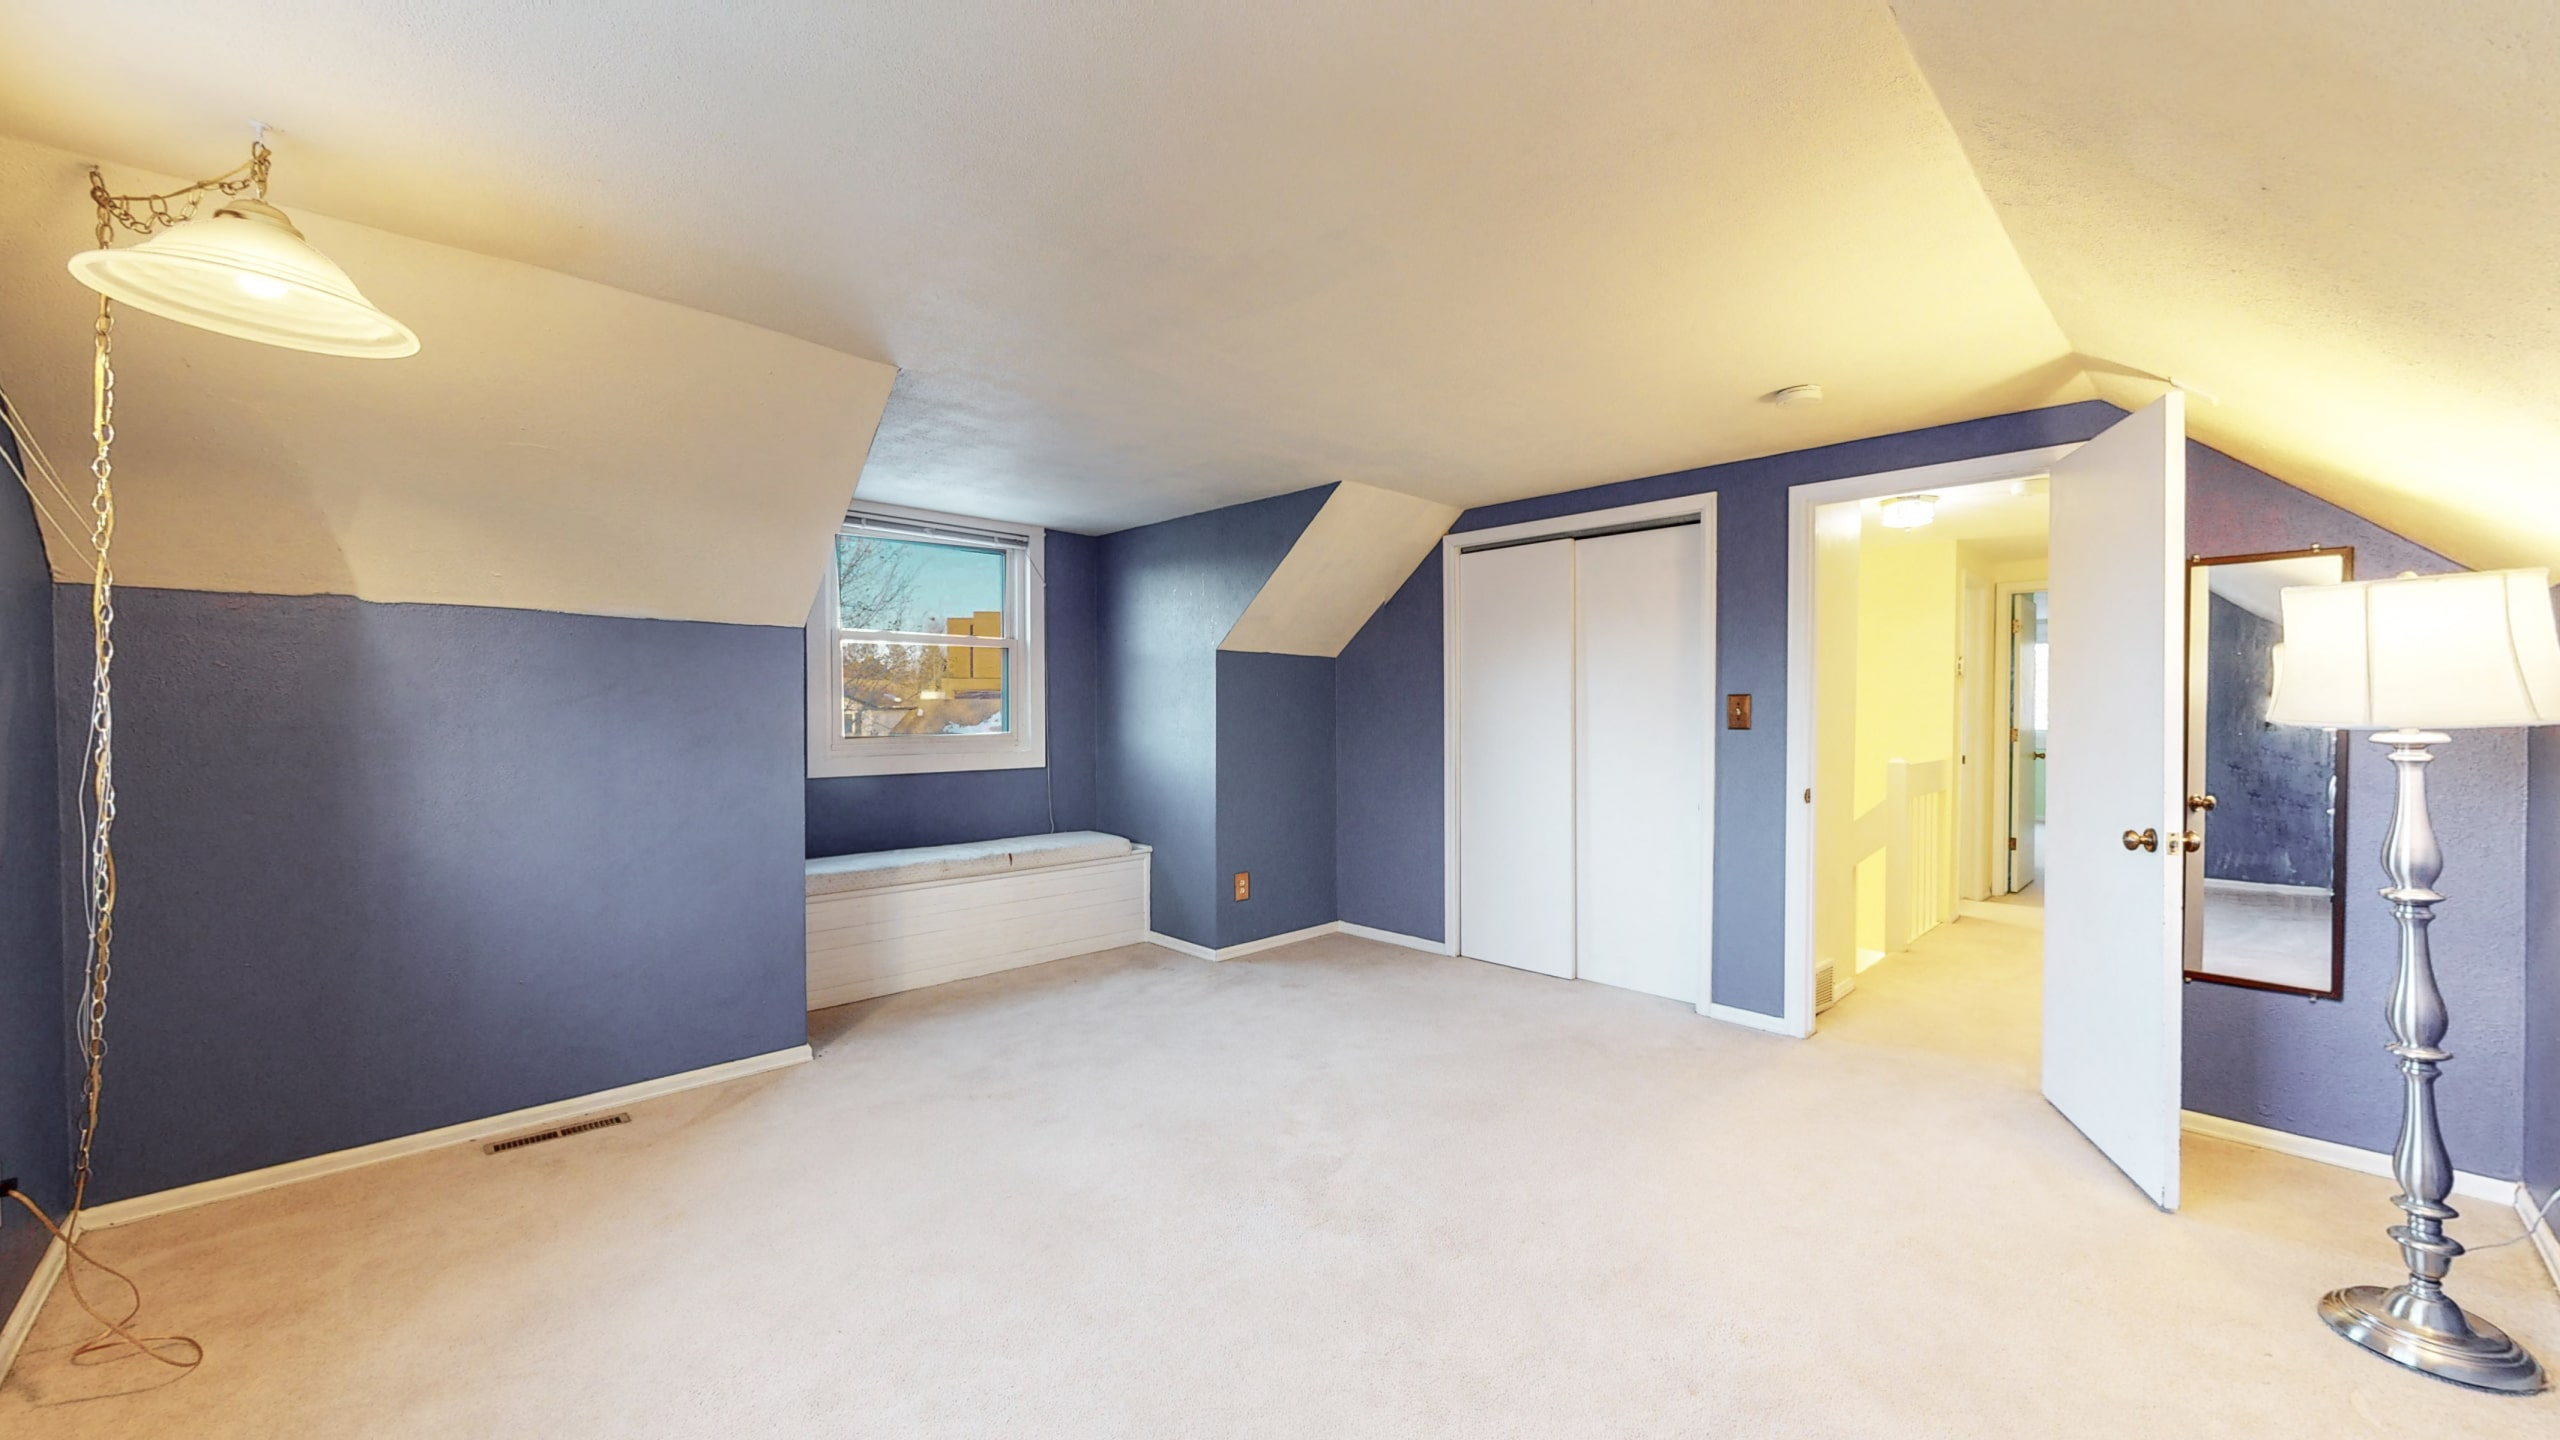 Brighton, CO home for sale, upstairs bedroom, blue walls, white trim, sitting bench